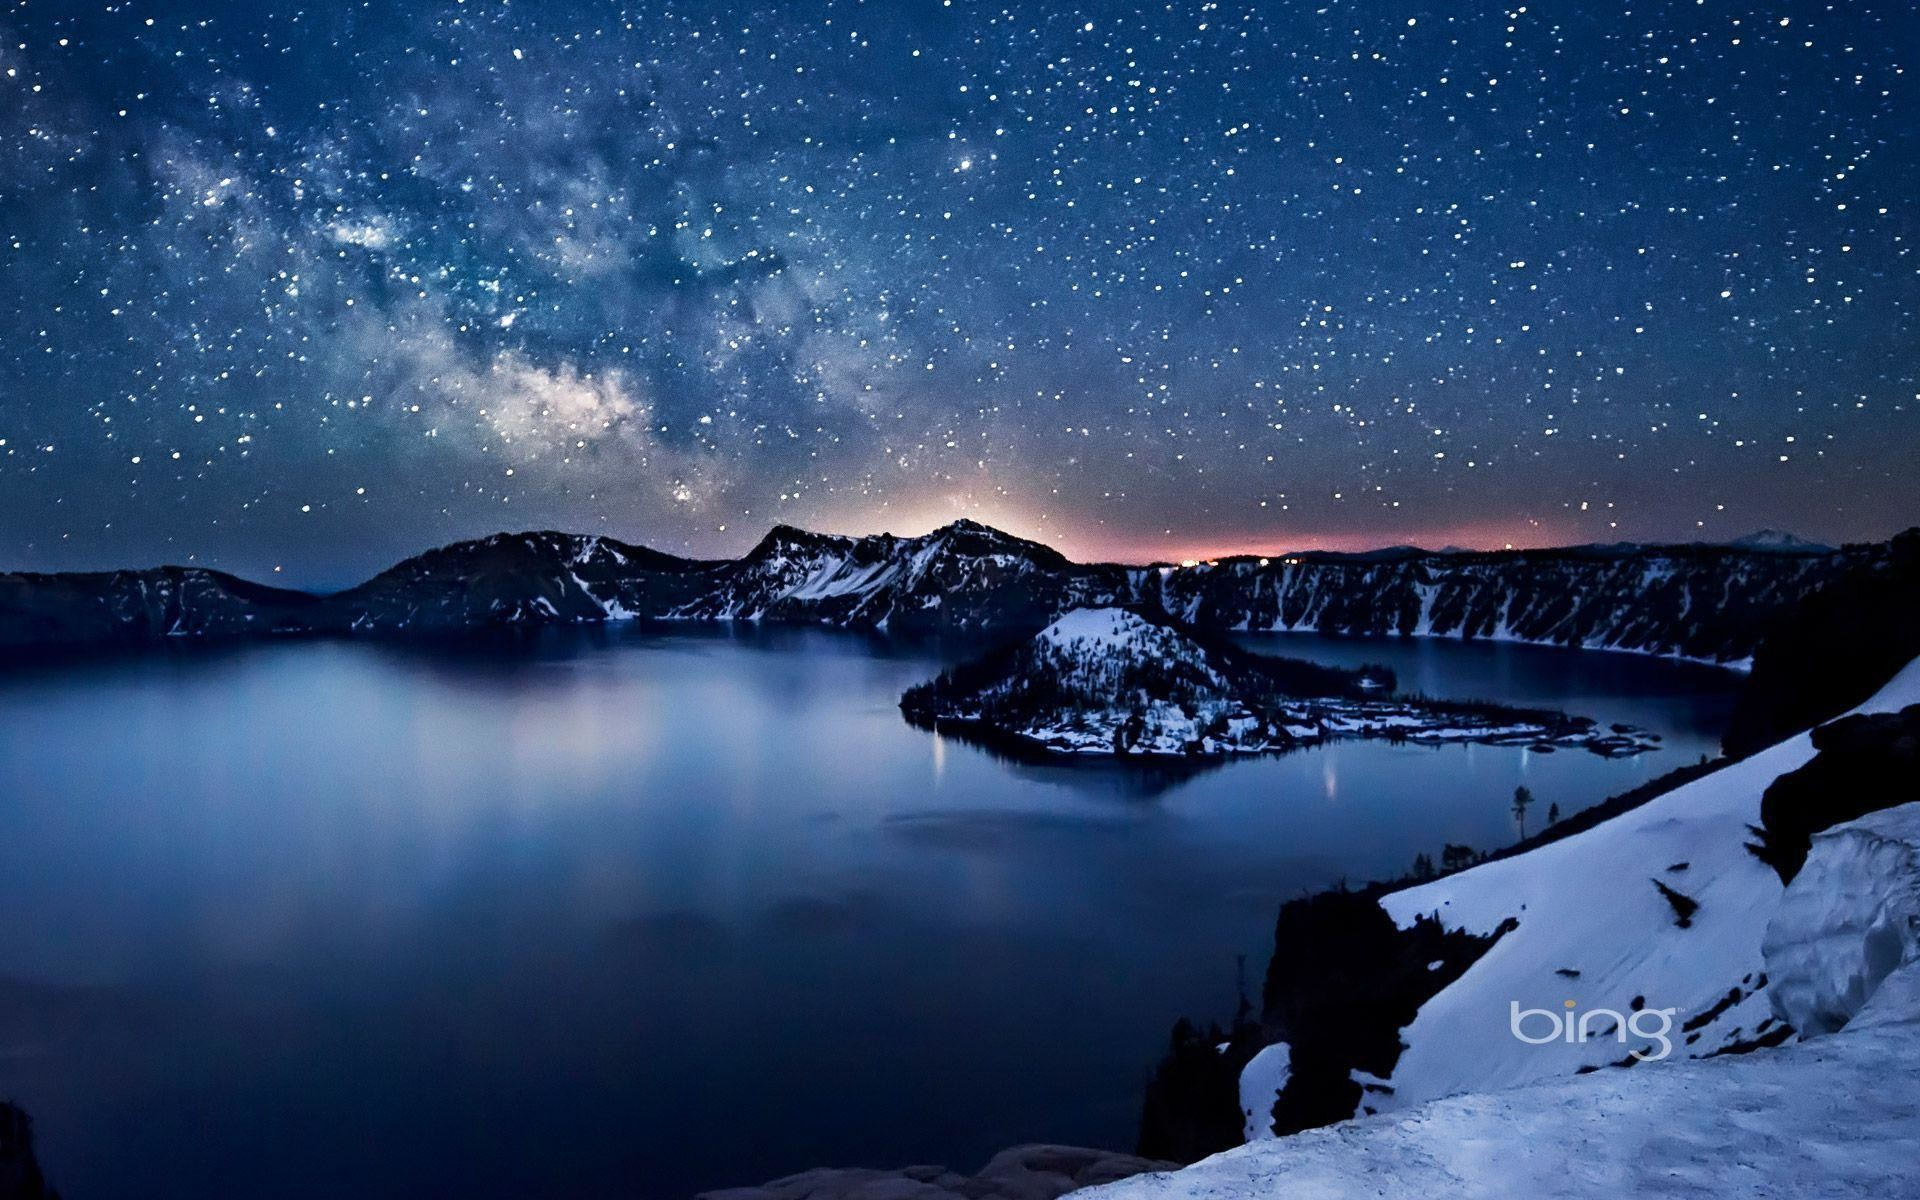 Milky Way above Crater Lake, Oregon | HD Bing Wallpaper Archive